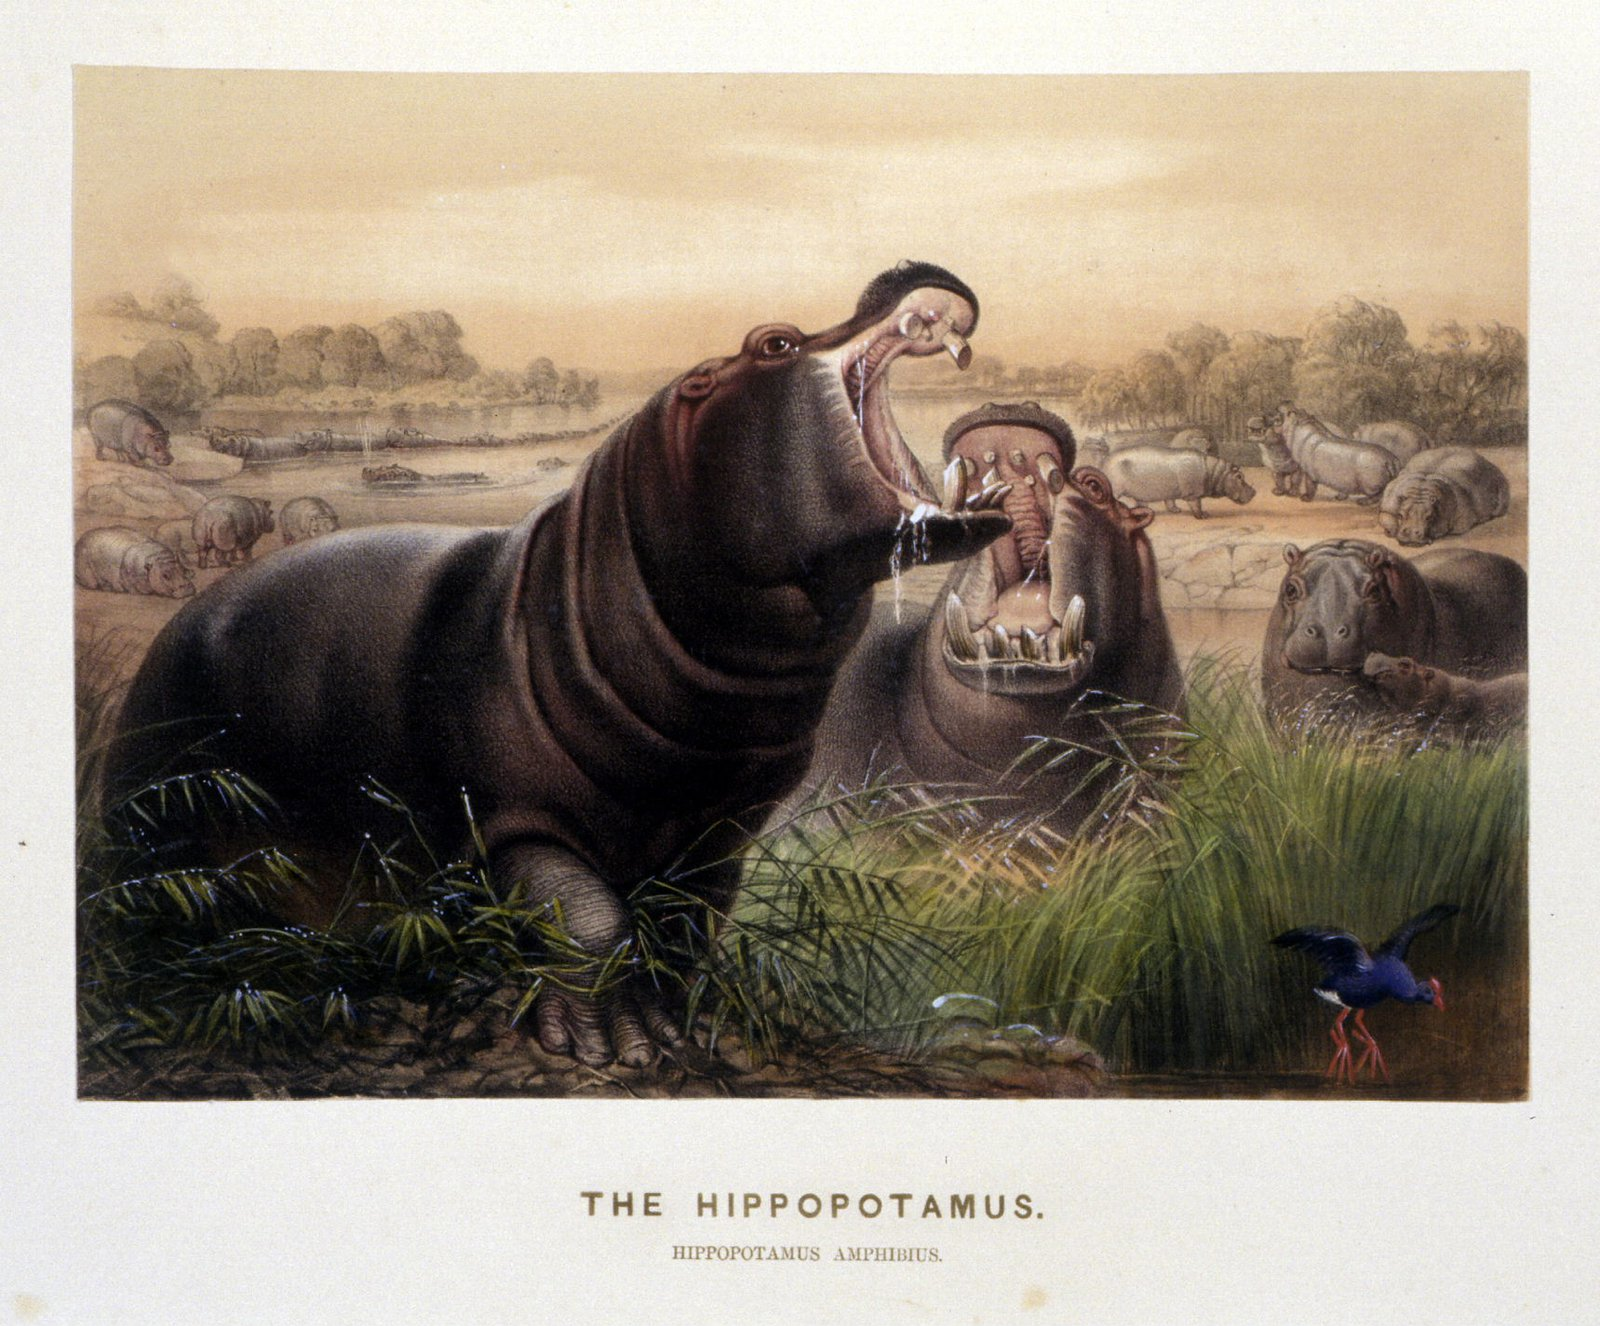 'The Hippopotamus' by Josef Wolf